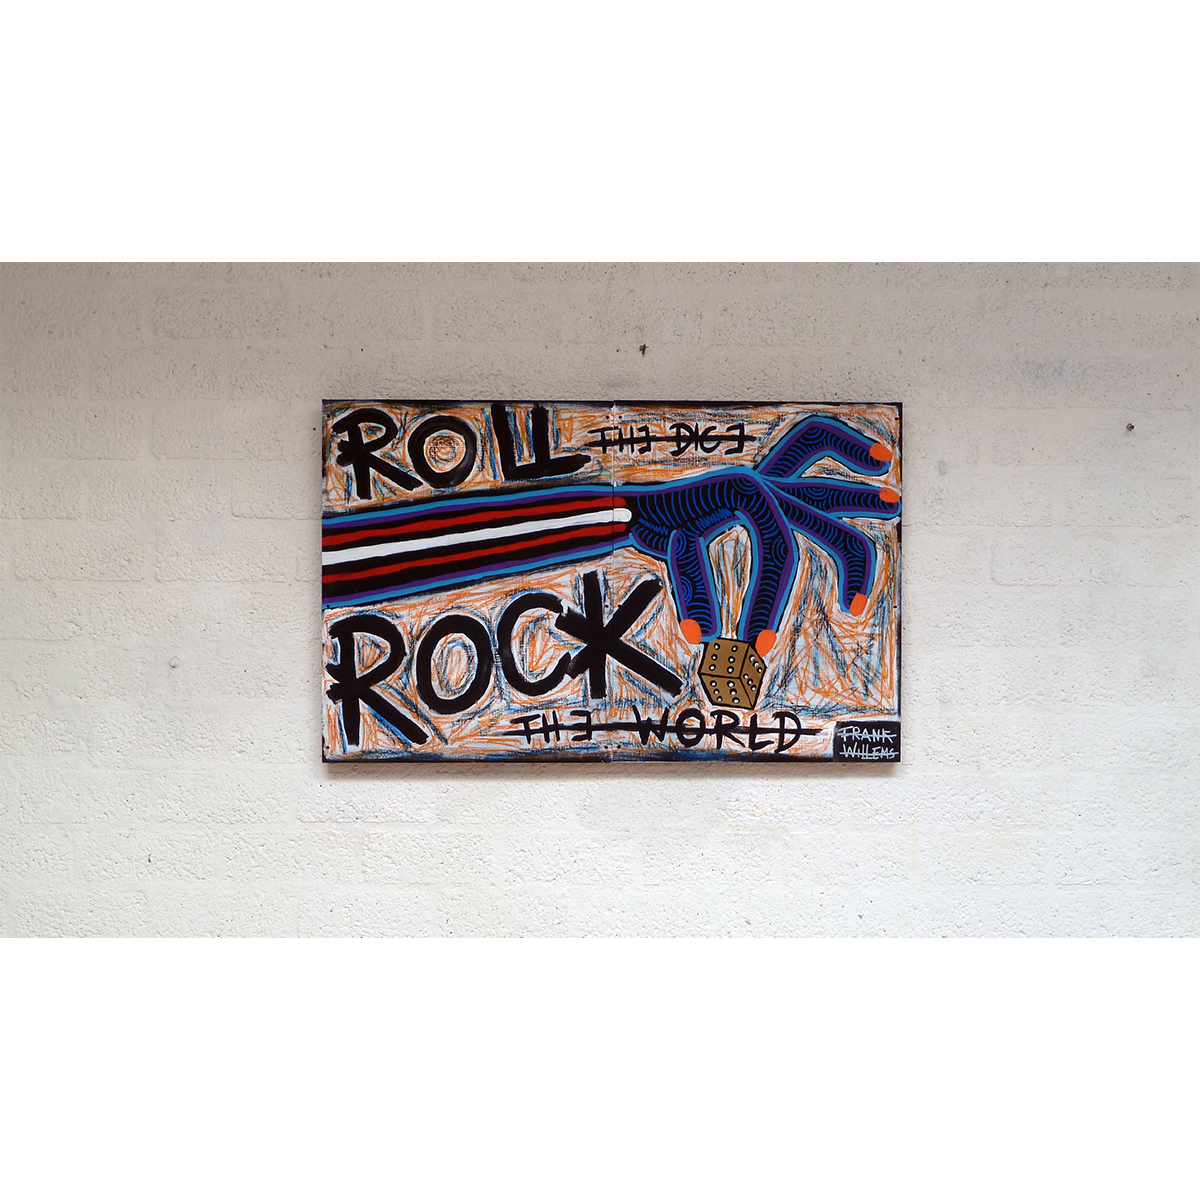 ROLL AND ROCK 02 - Frank Willems